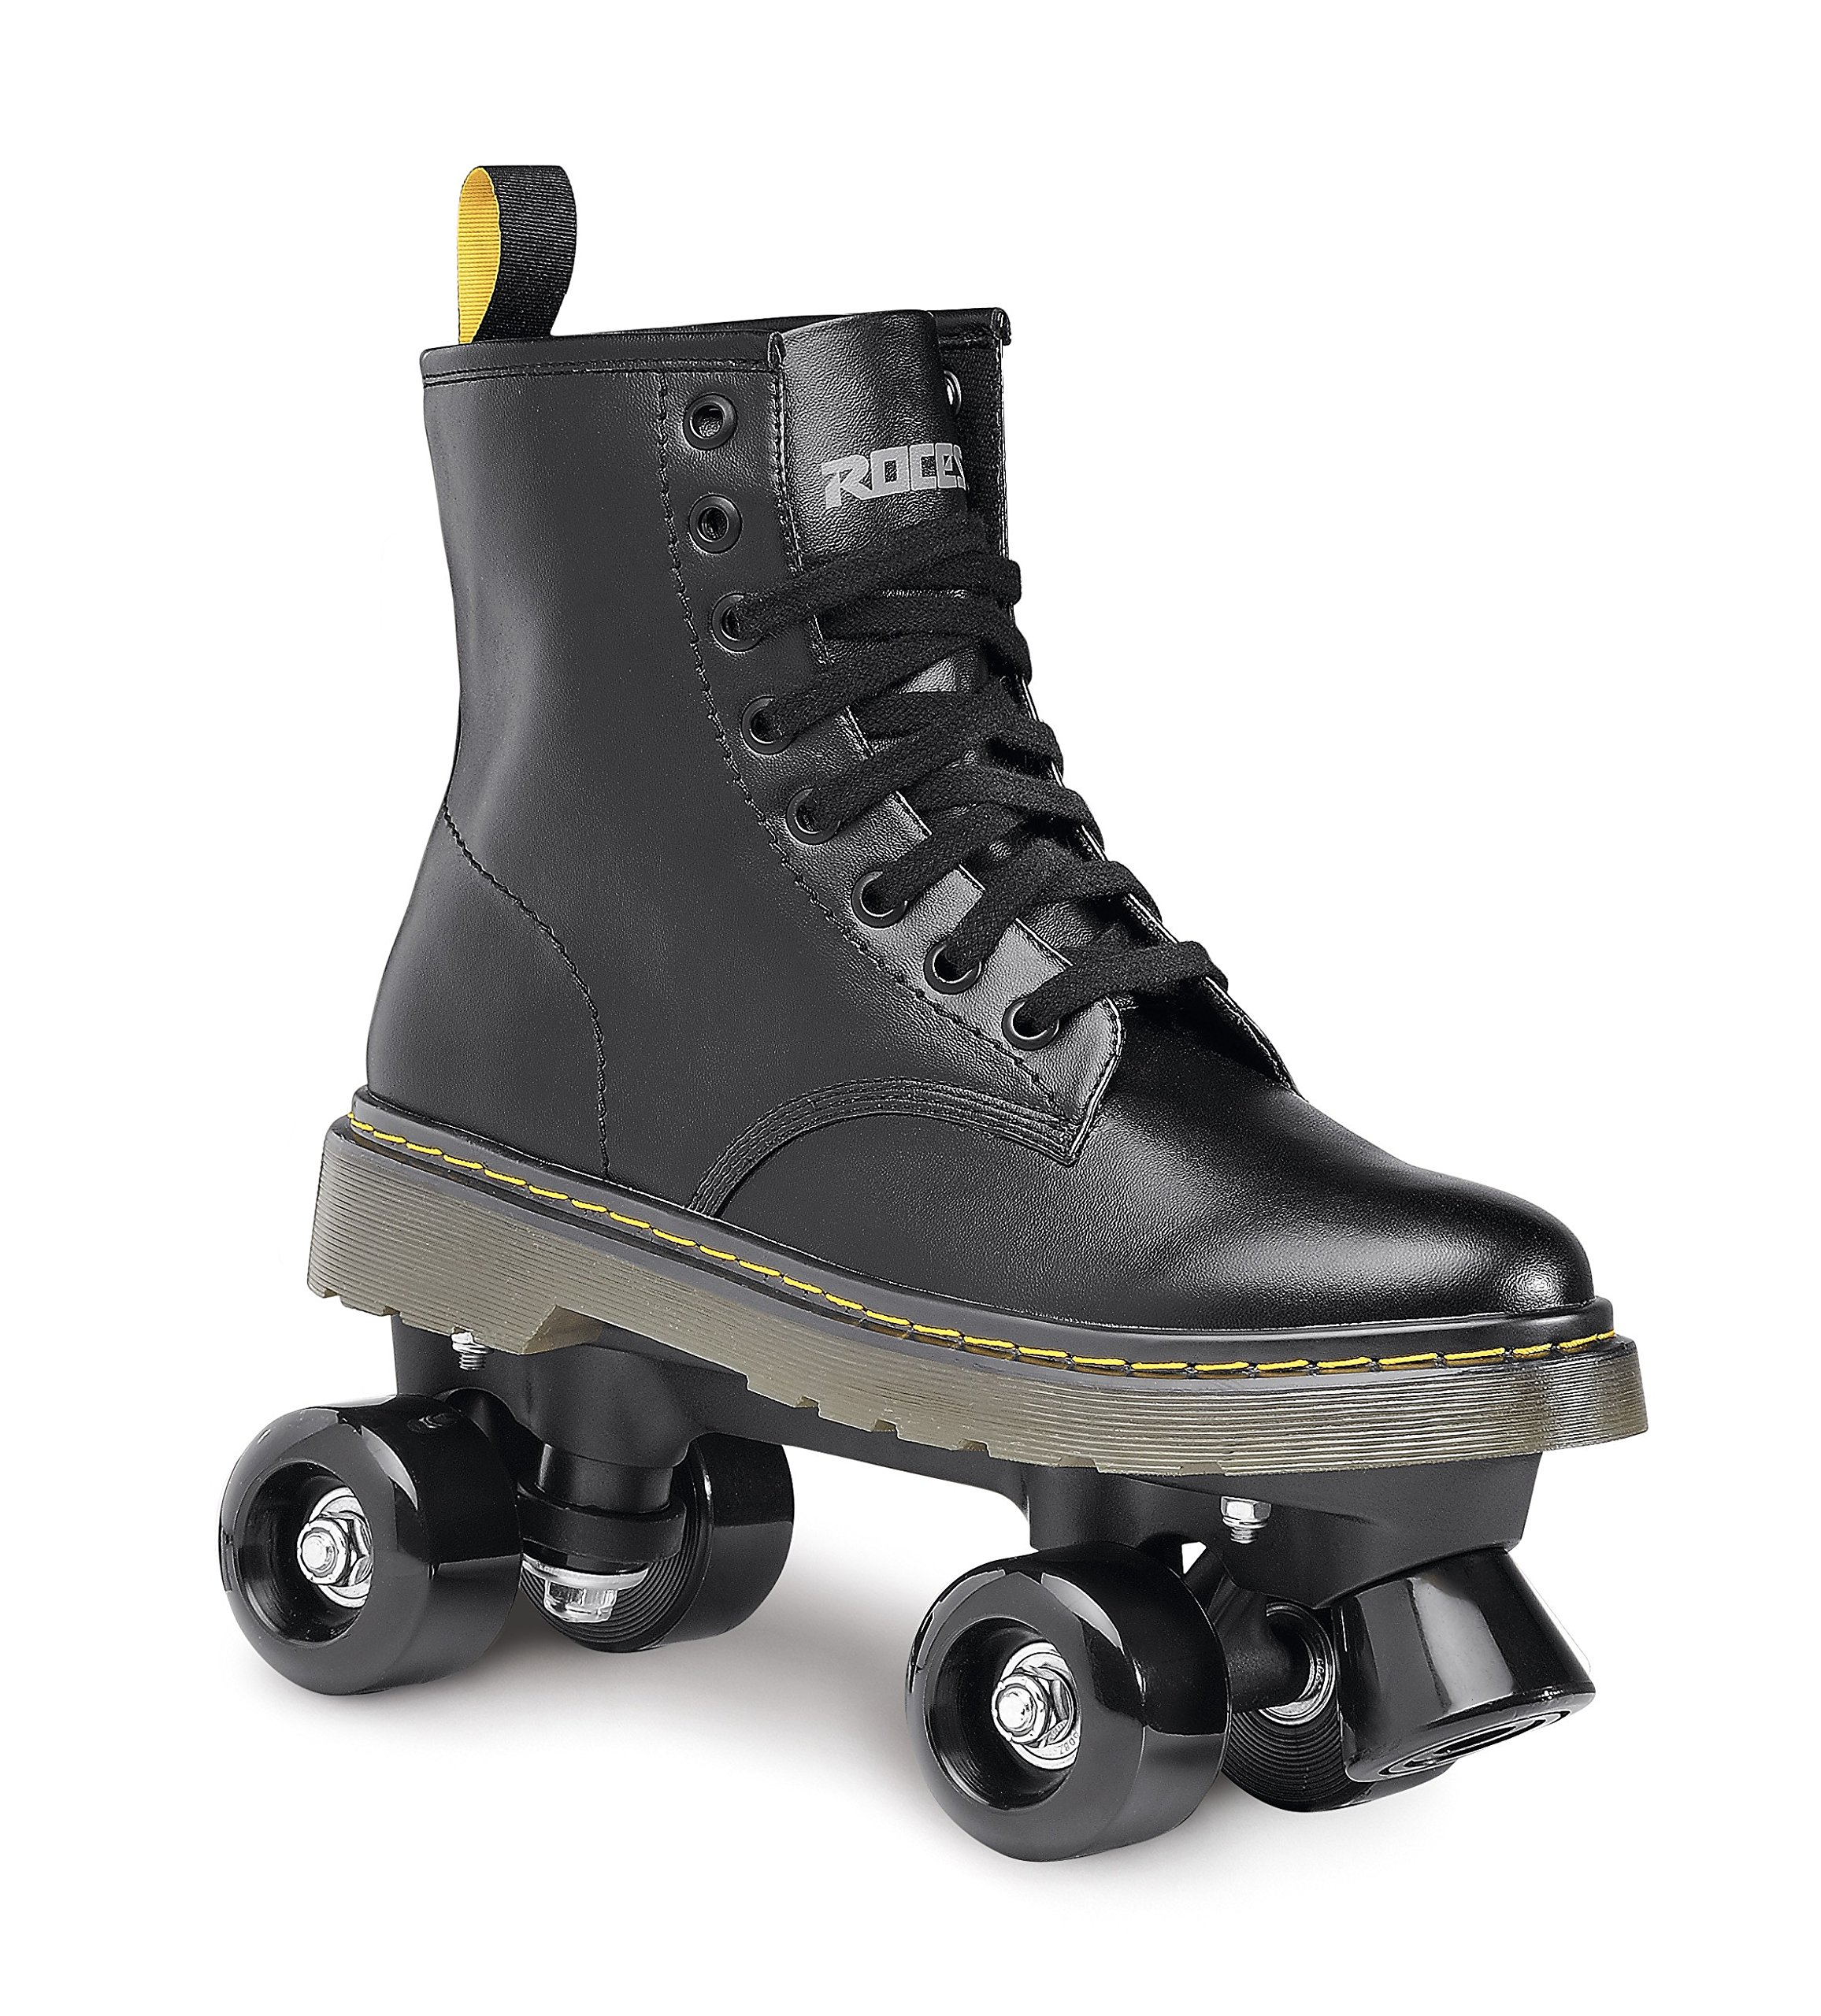 Roces 550061 Model Clash Roller Skate, US 7M/9W, Black by Roces